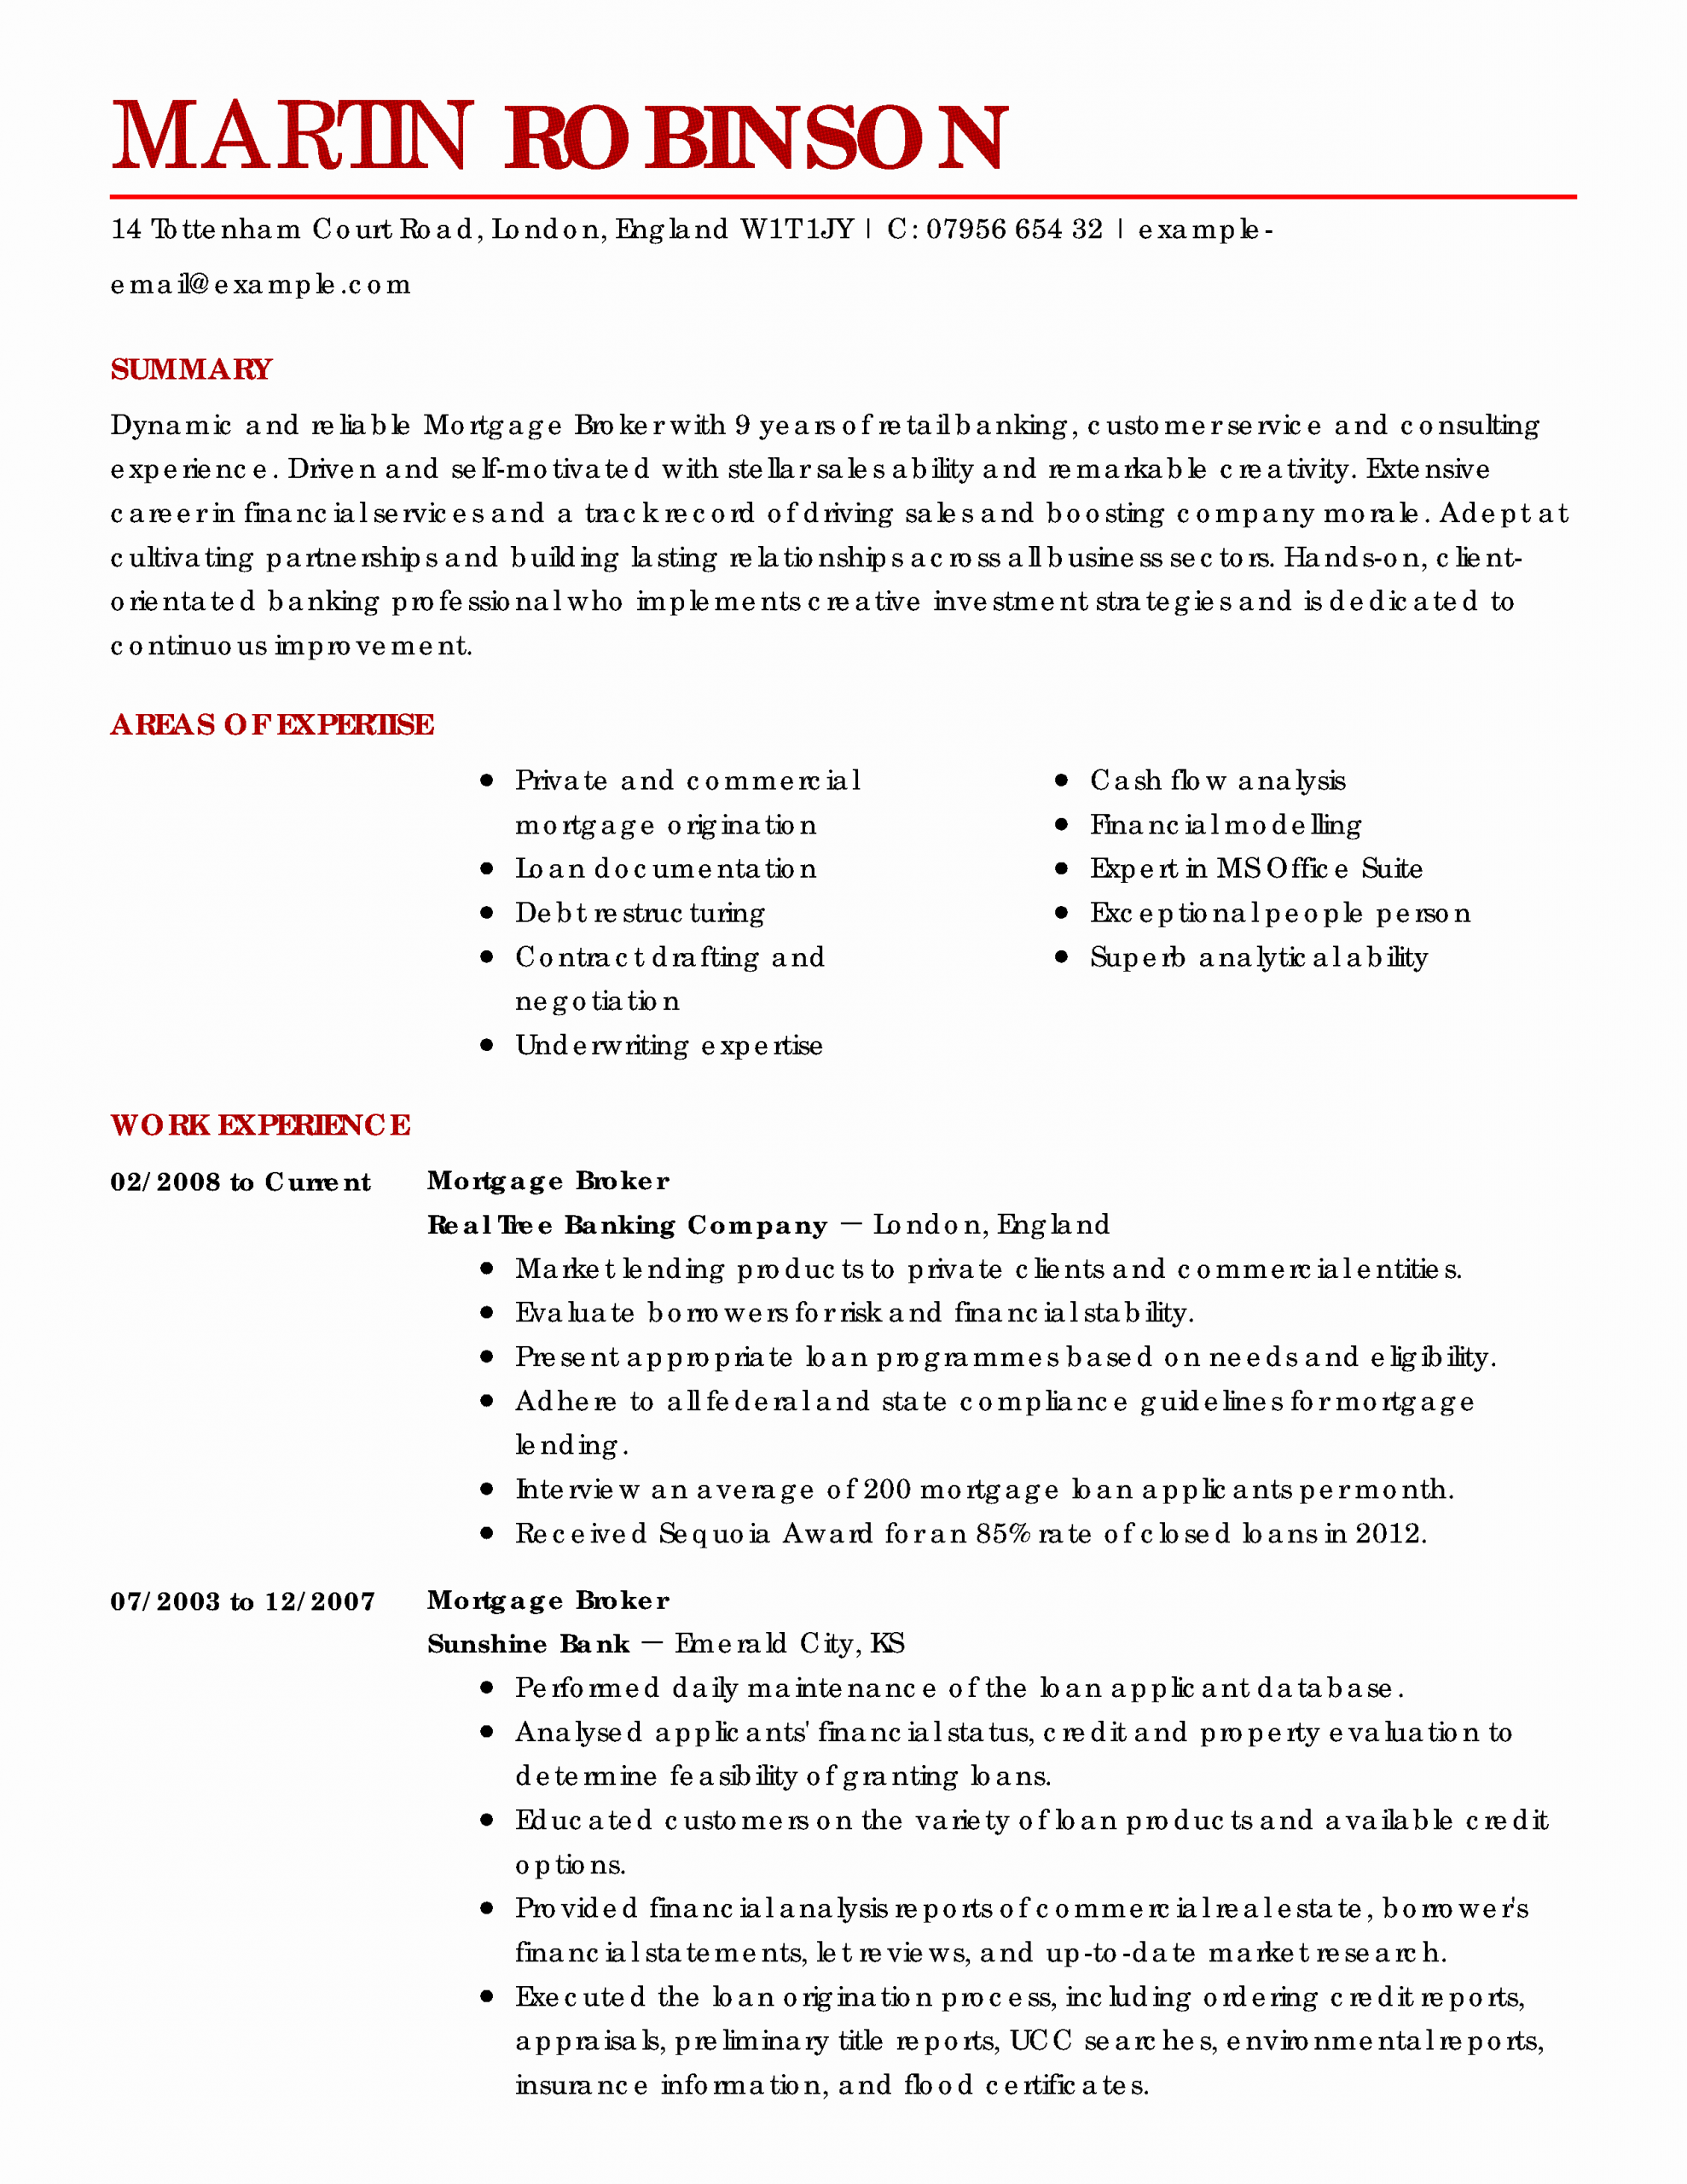 23 Real Estate Agent Resume Job Description in 2020 (With